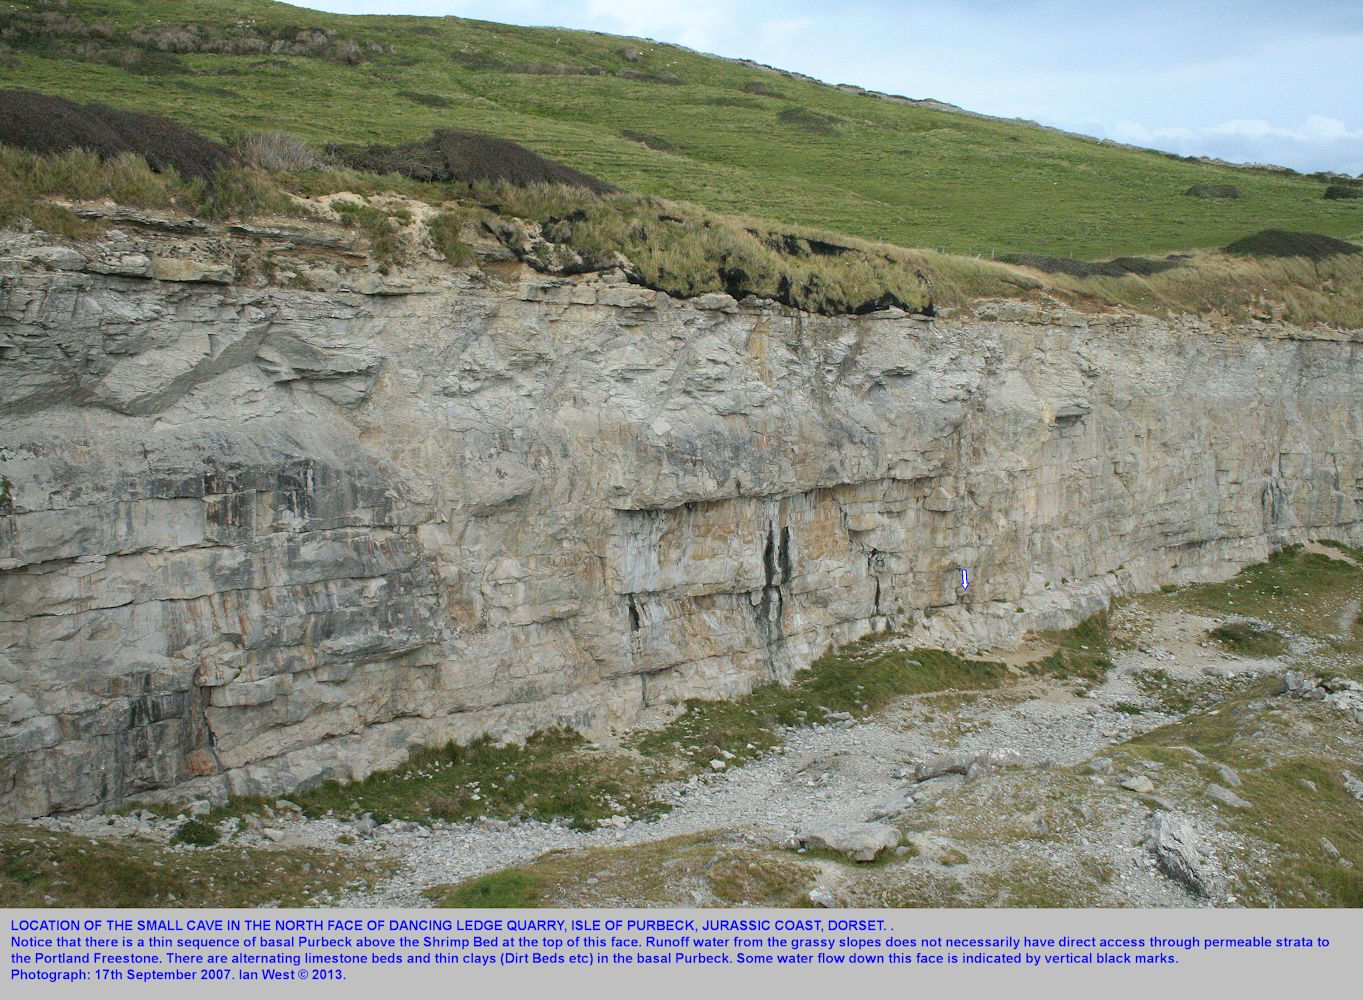 The location of the small cave in the north face of the Dancing Ledge quarry, near Swanage, Isle of Purbeck, Dorset, Jurassic Coast